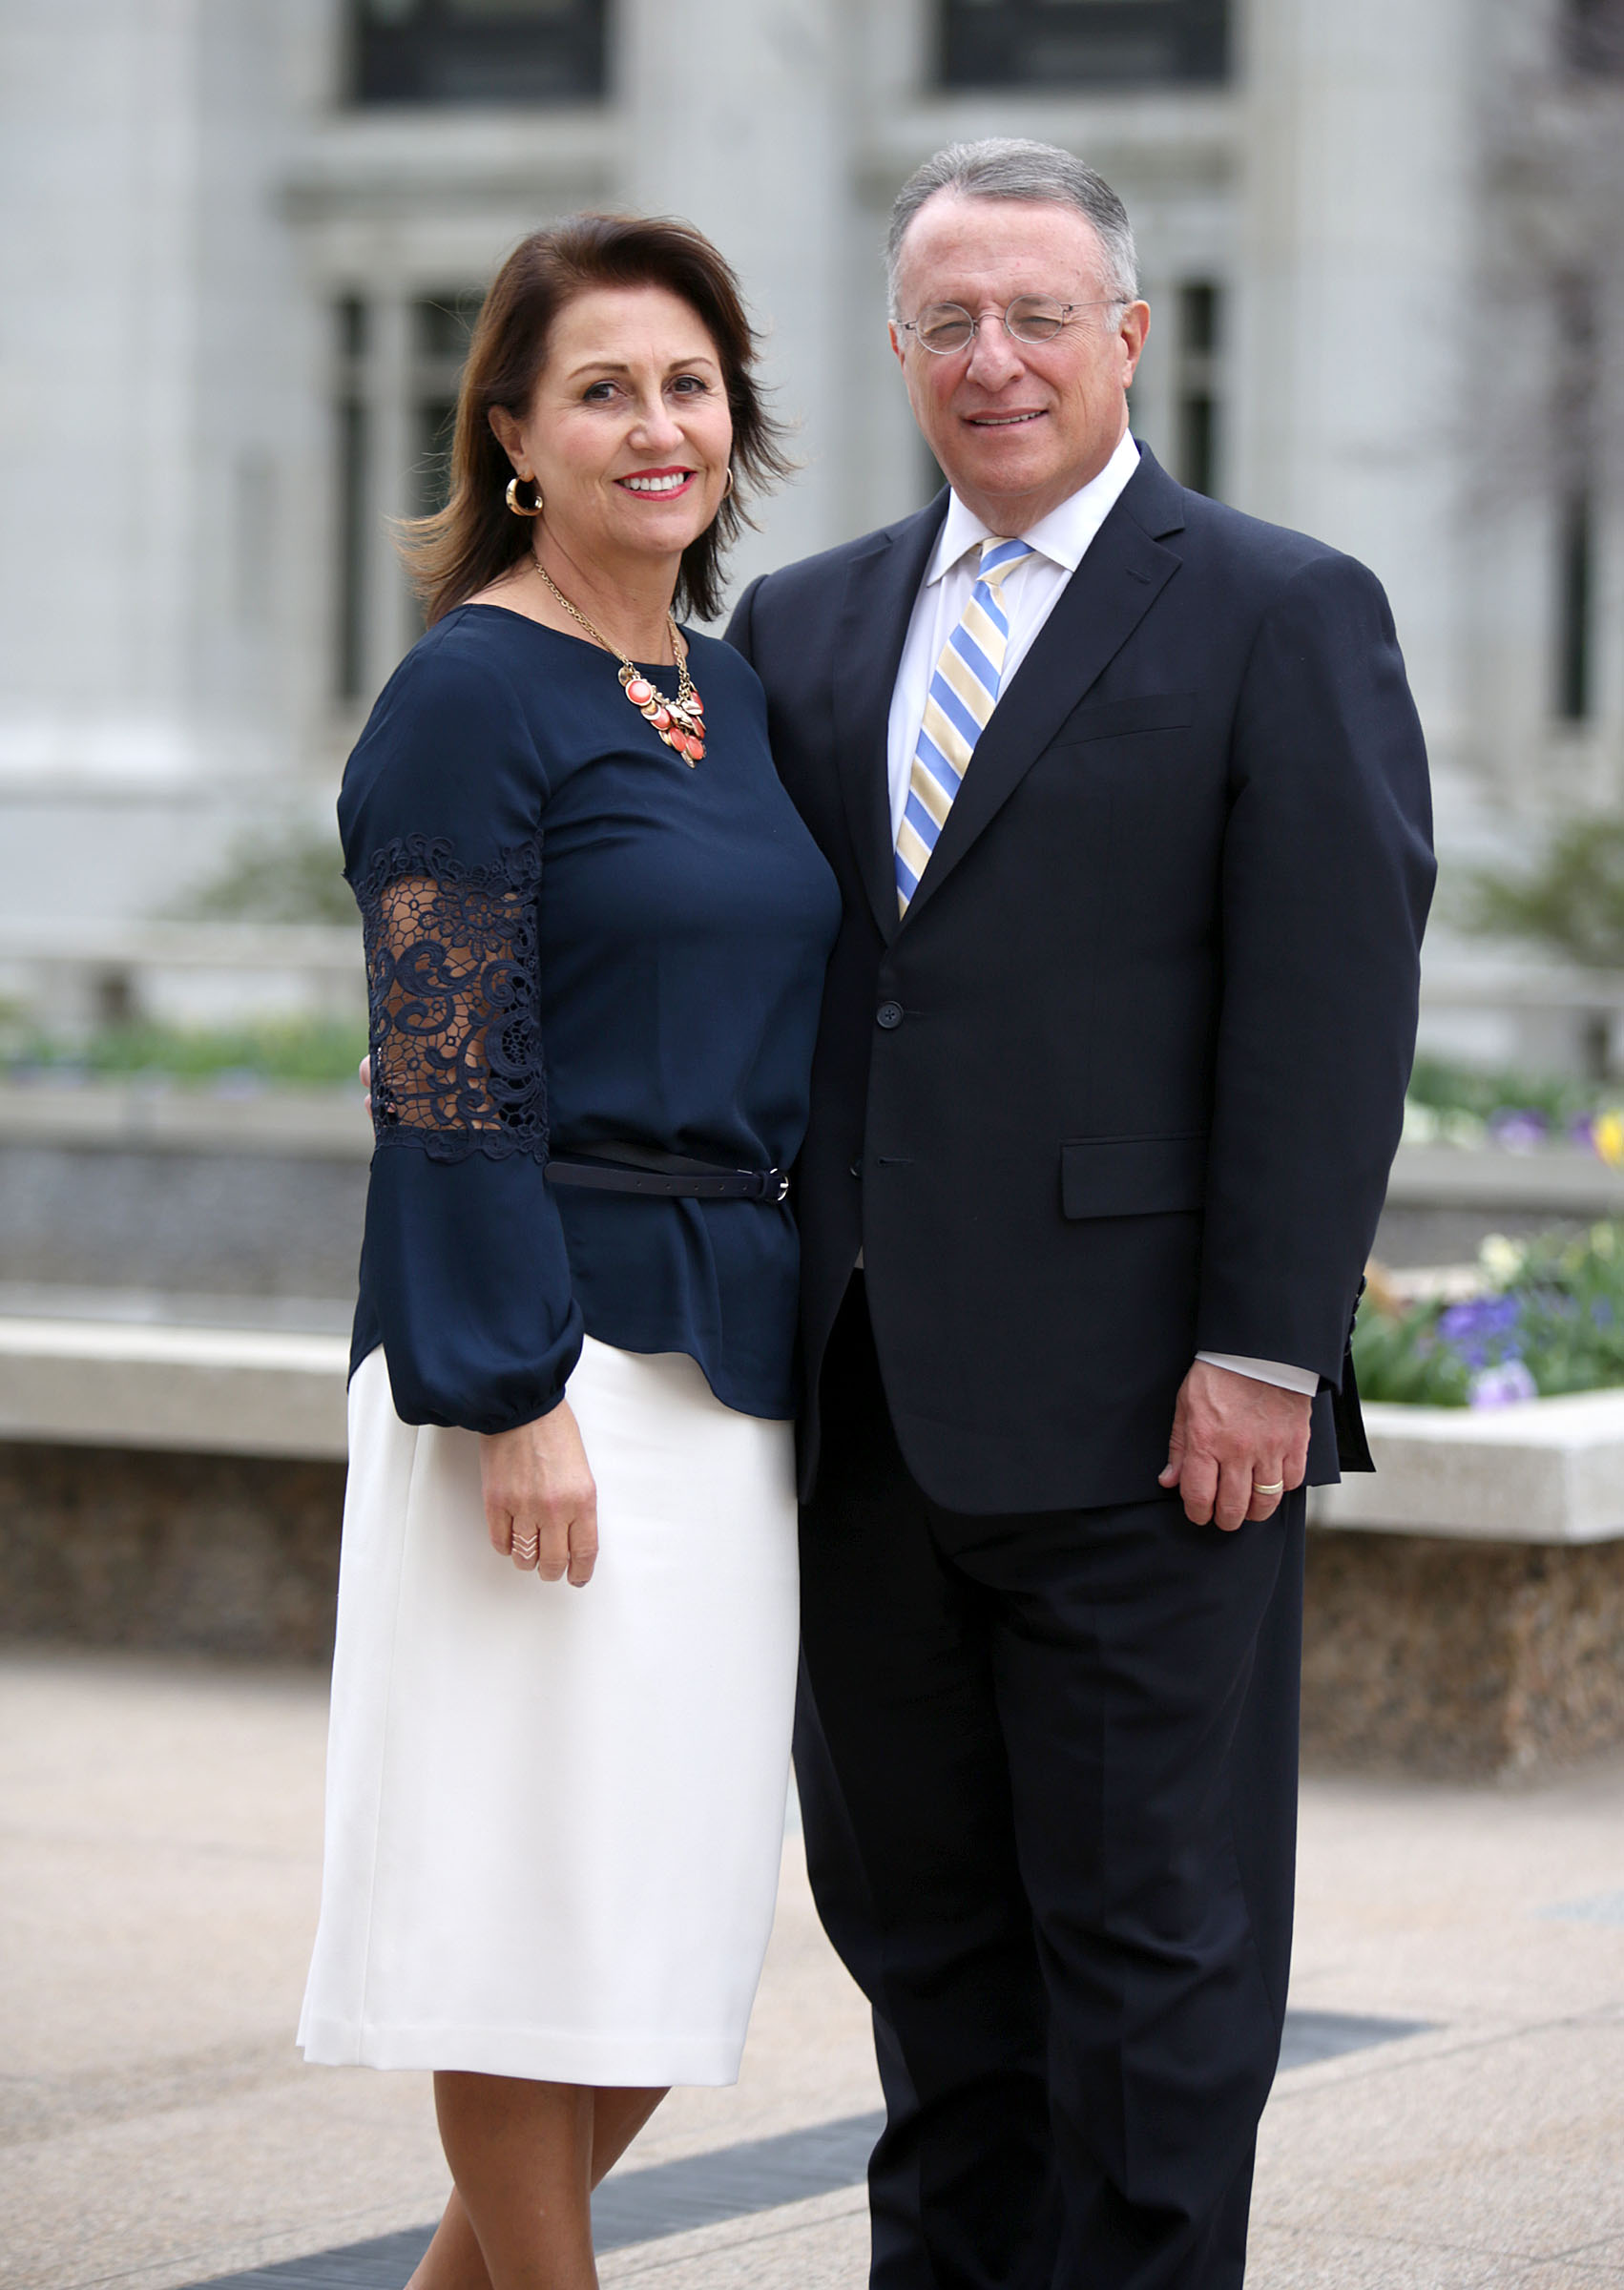 Sister Rosana Soares and Elder Ulisses Soares pose for a portrait outside of the Church Administration Building in Salt Lake City on Wednesday, April 4, 2018.